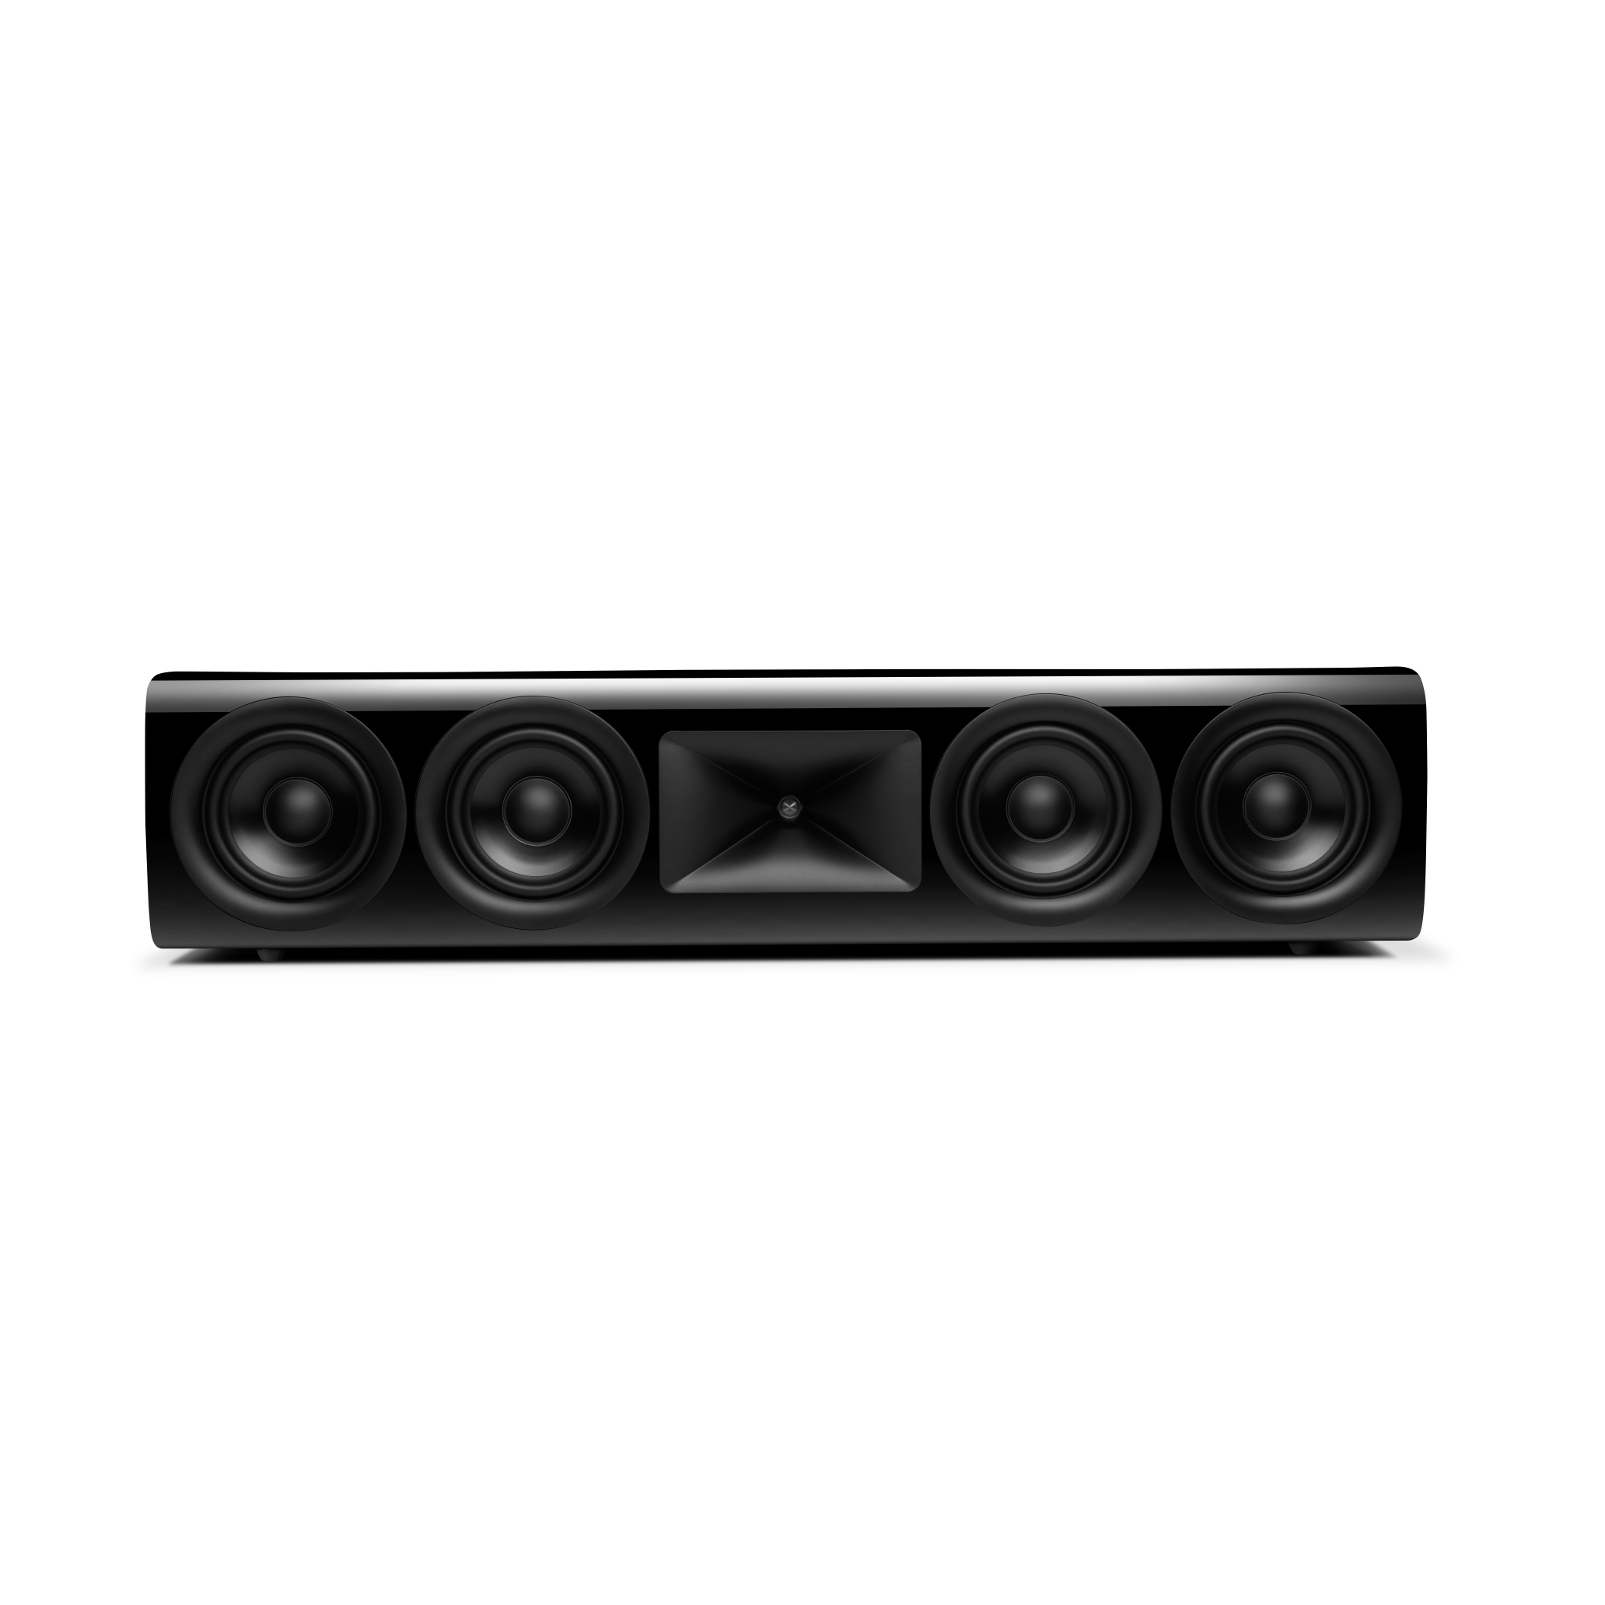 HDI-4500 - Black Gloss - 2 ½-way Quadruple 5.25-inch (130mm) Center Channel Loudspeaker - Hero